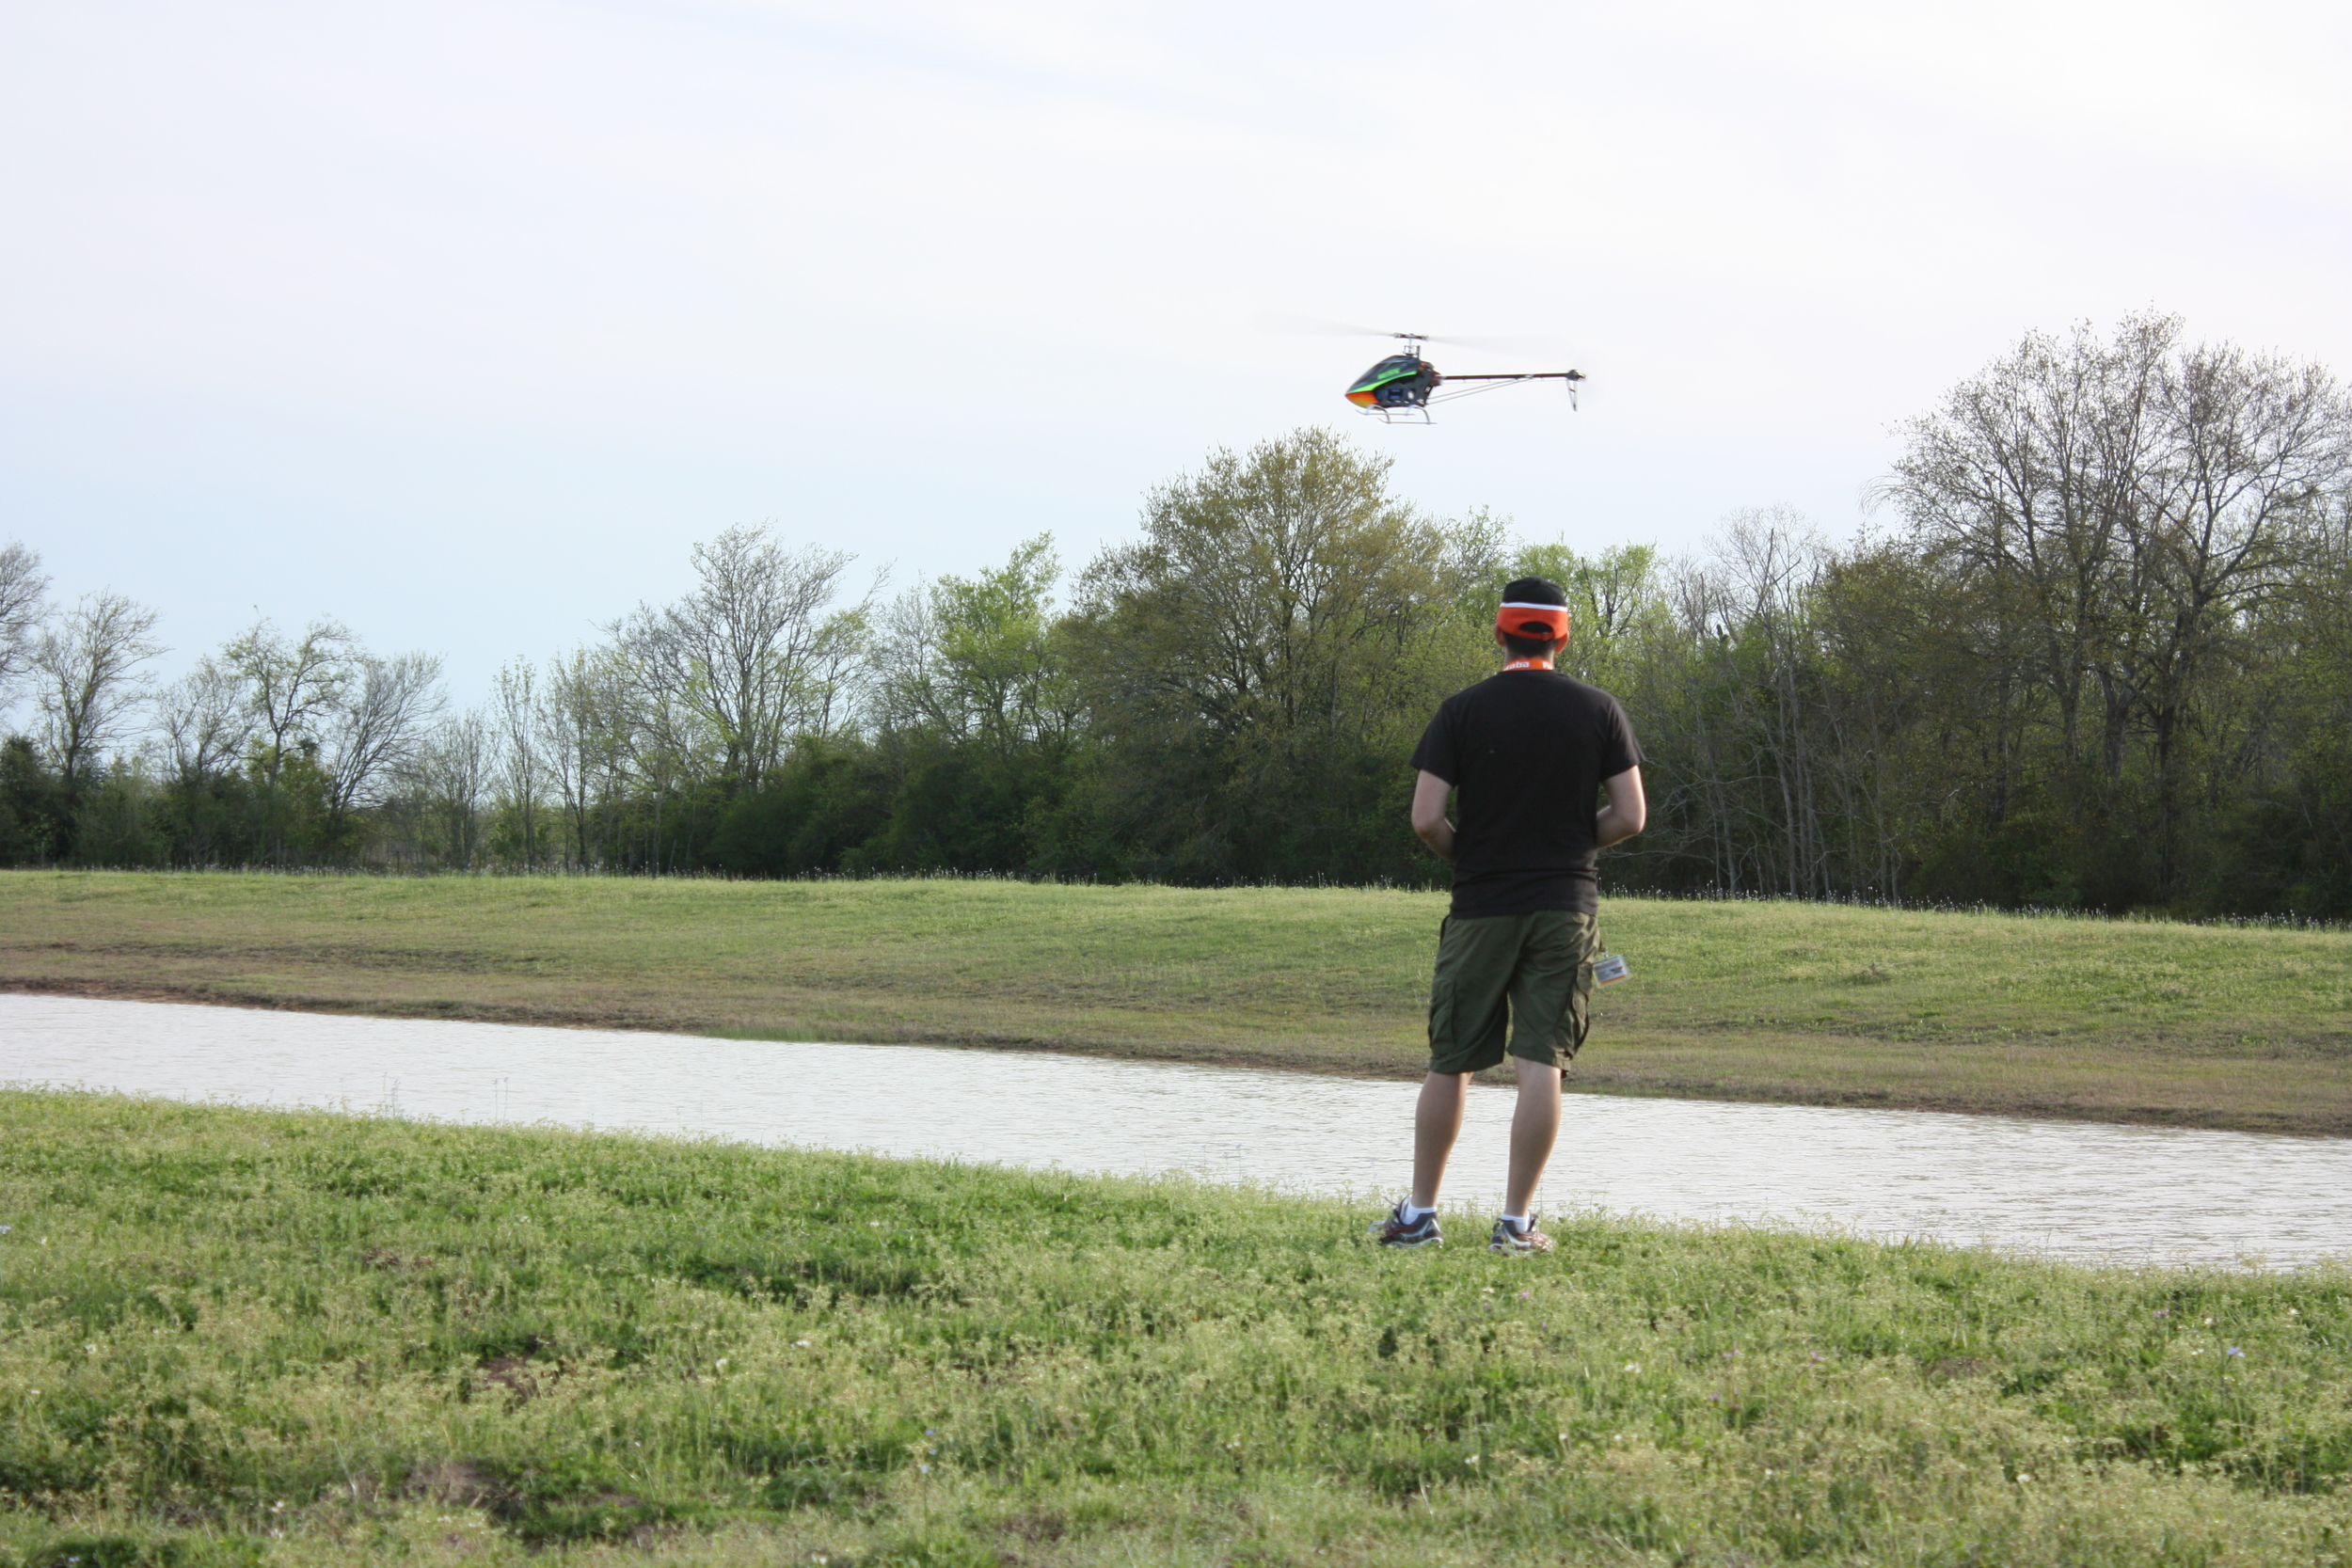 Heli at the Pond